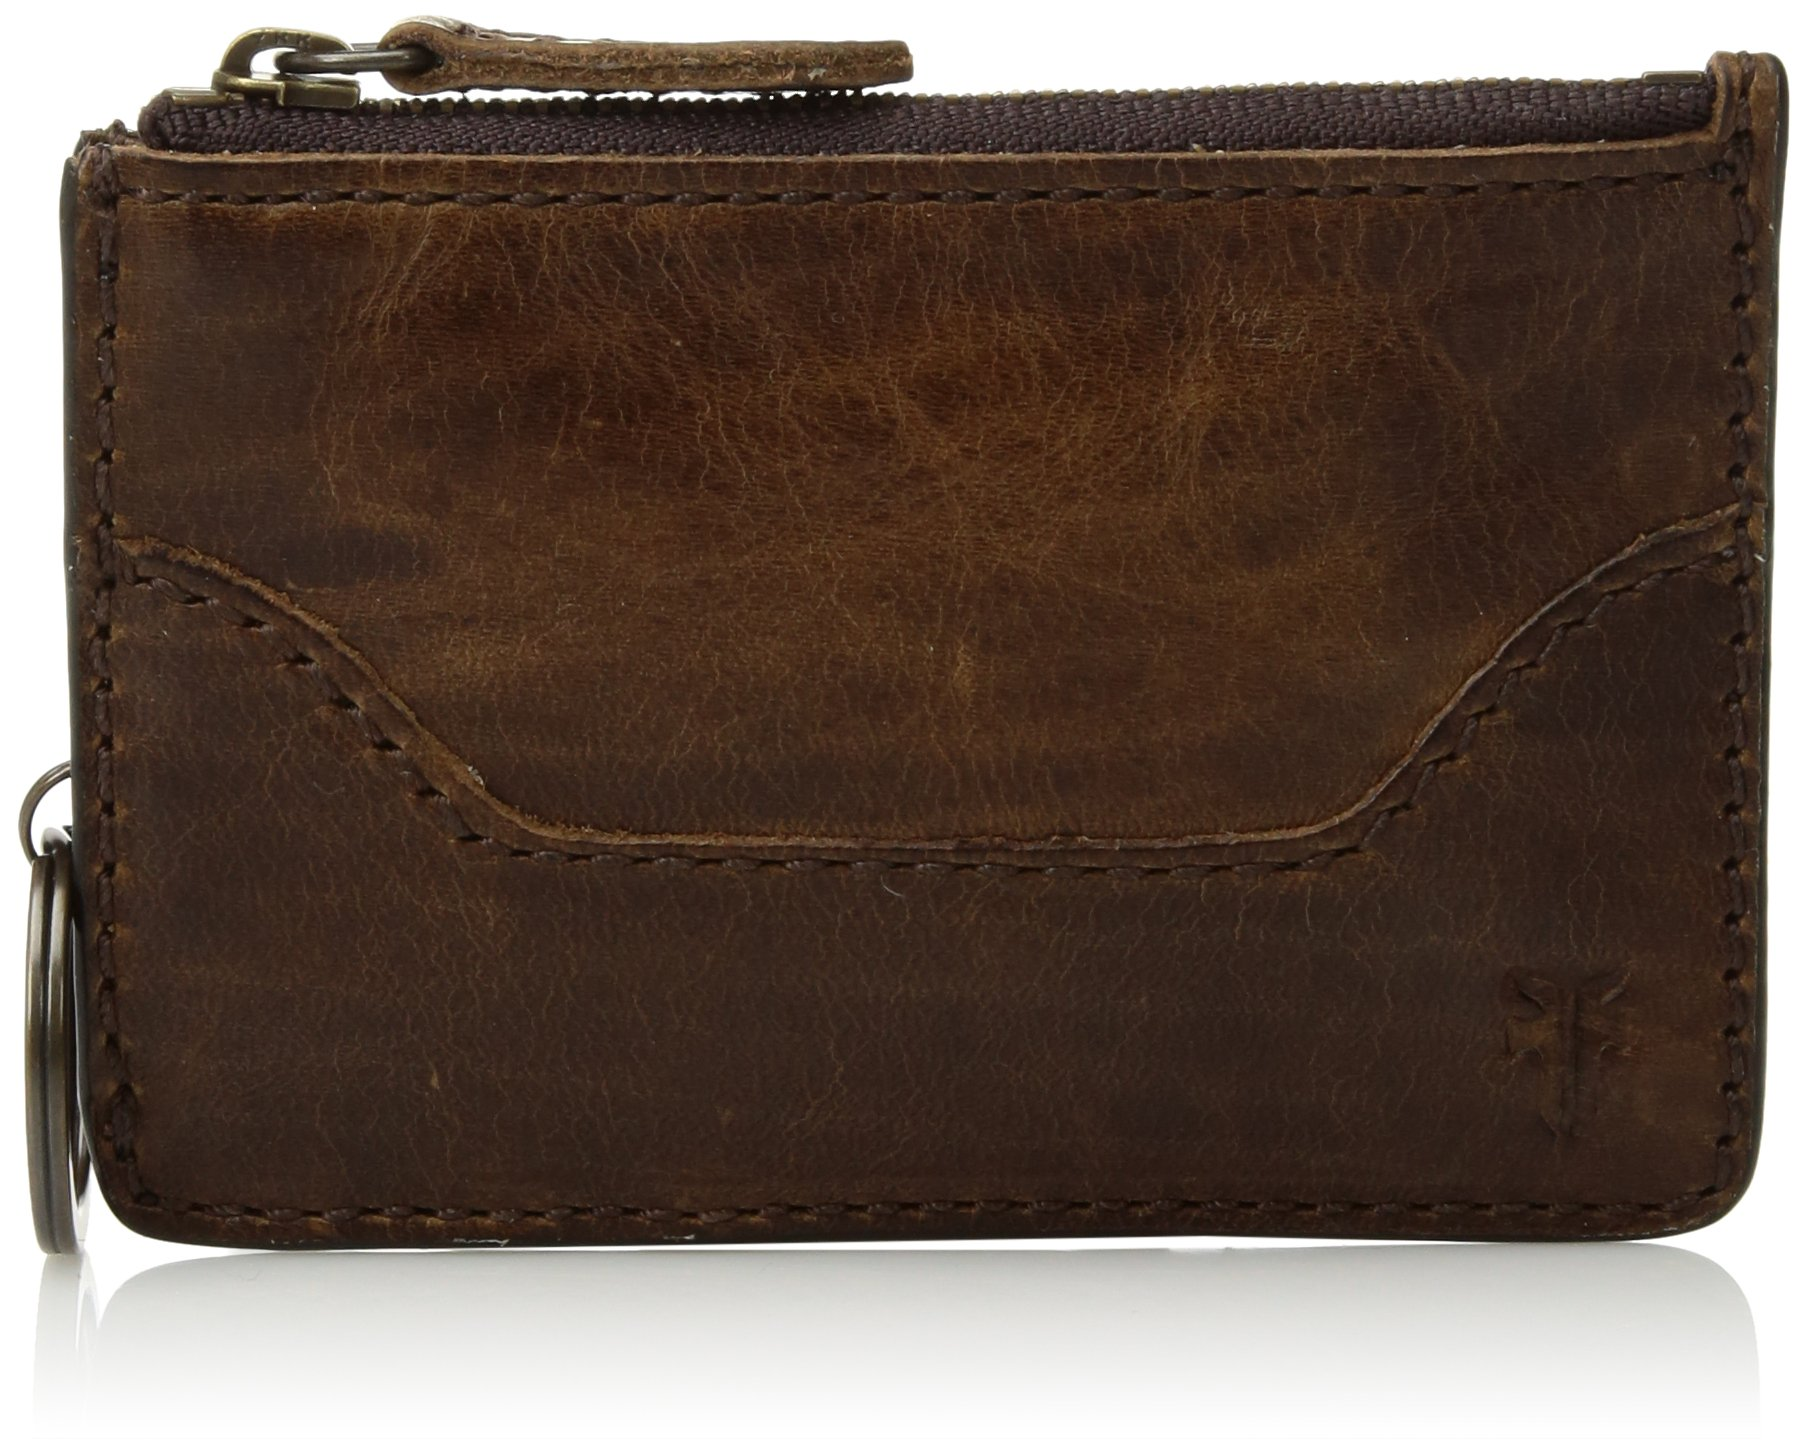 FRYE Women's Melissa Key Card, Dark Brown One size